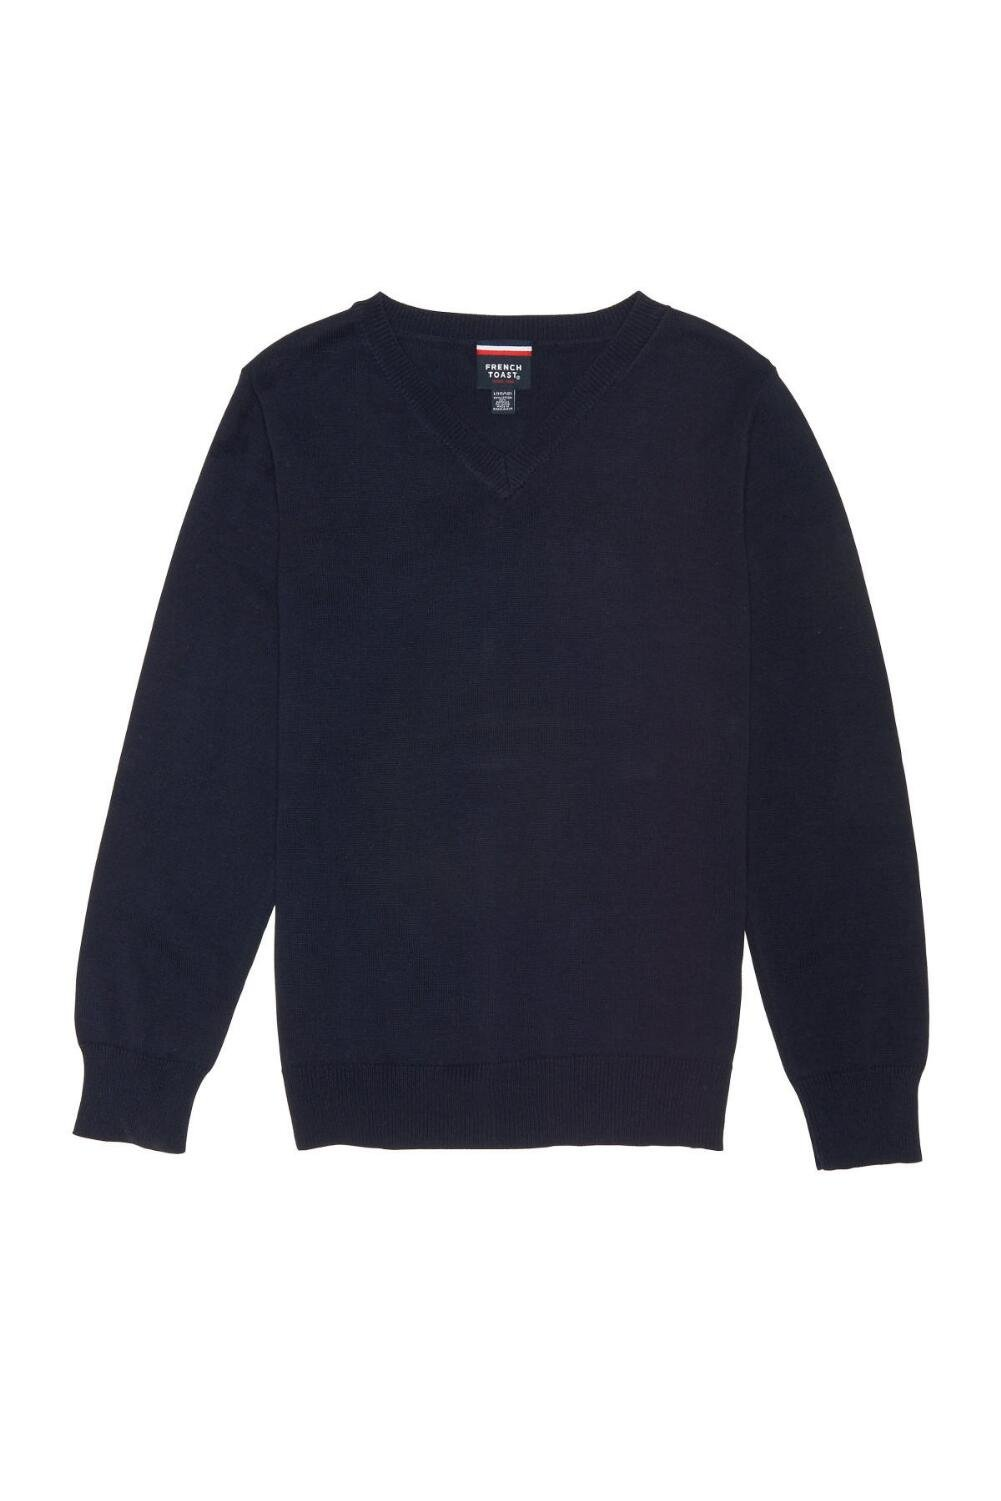 French Toast Little Boys' Fine Gauge V-Neck Sweater, Navy, XS (4/5) by French Toast (Image #1)